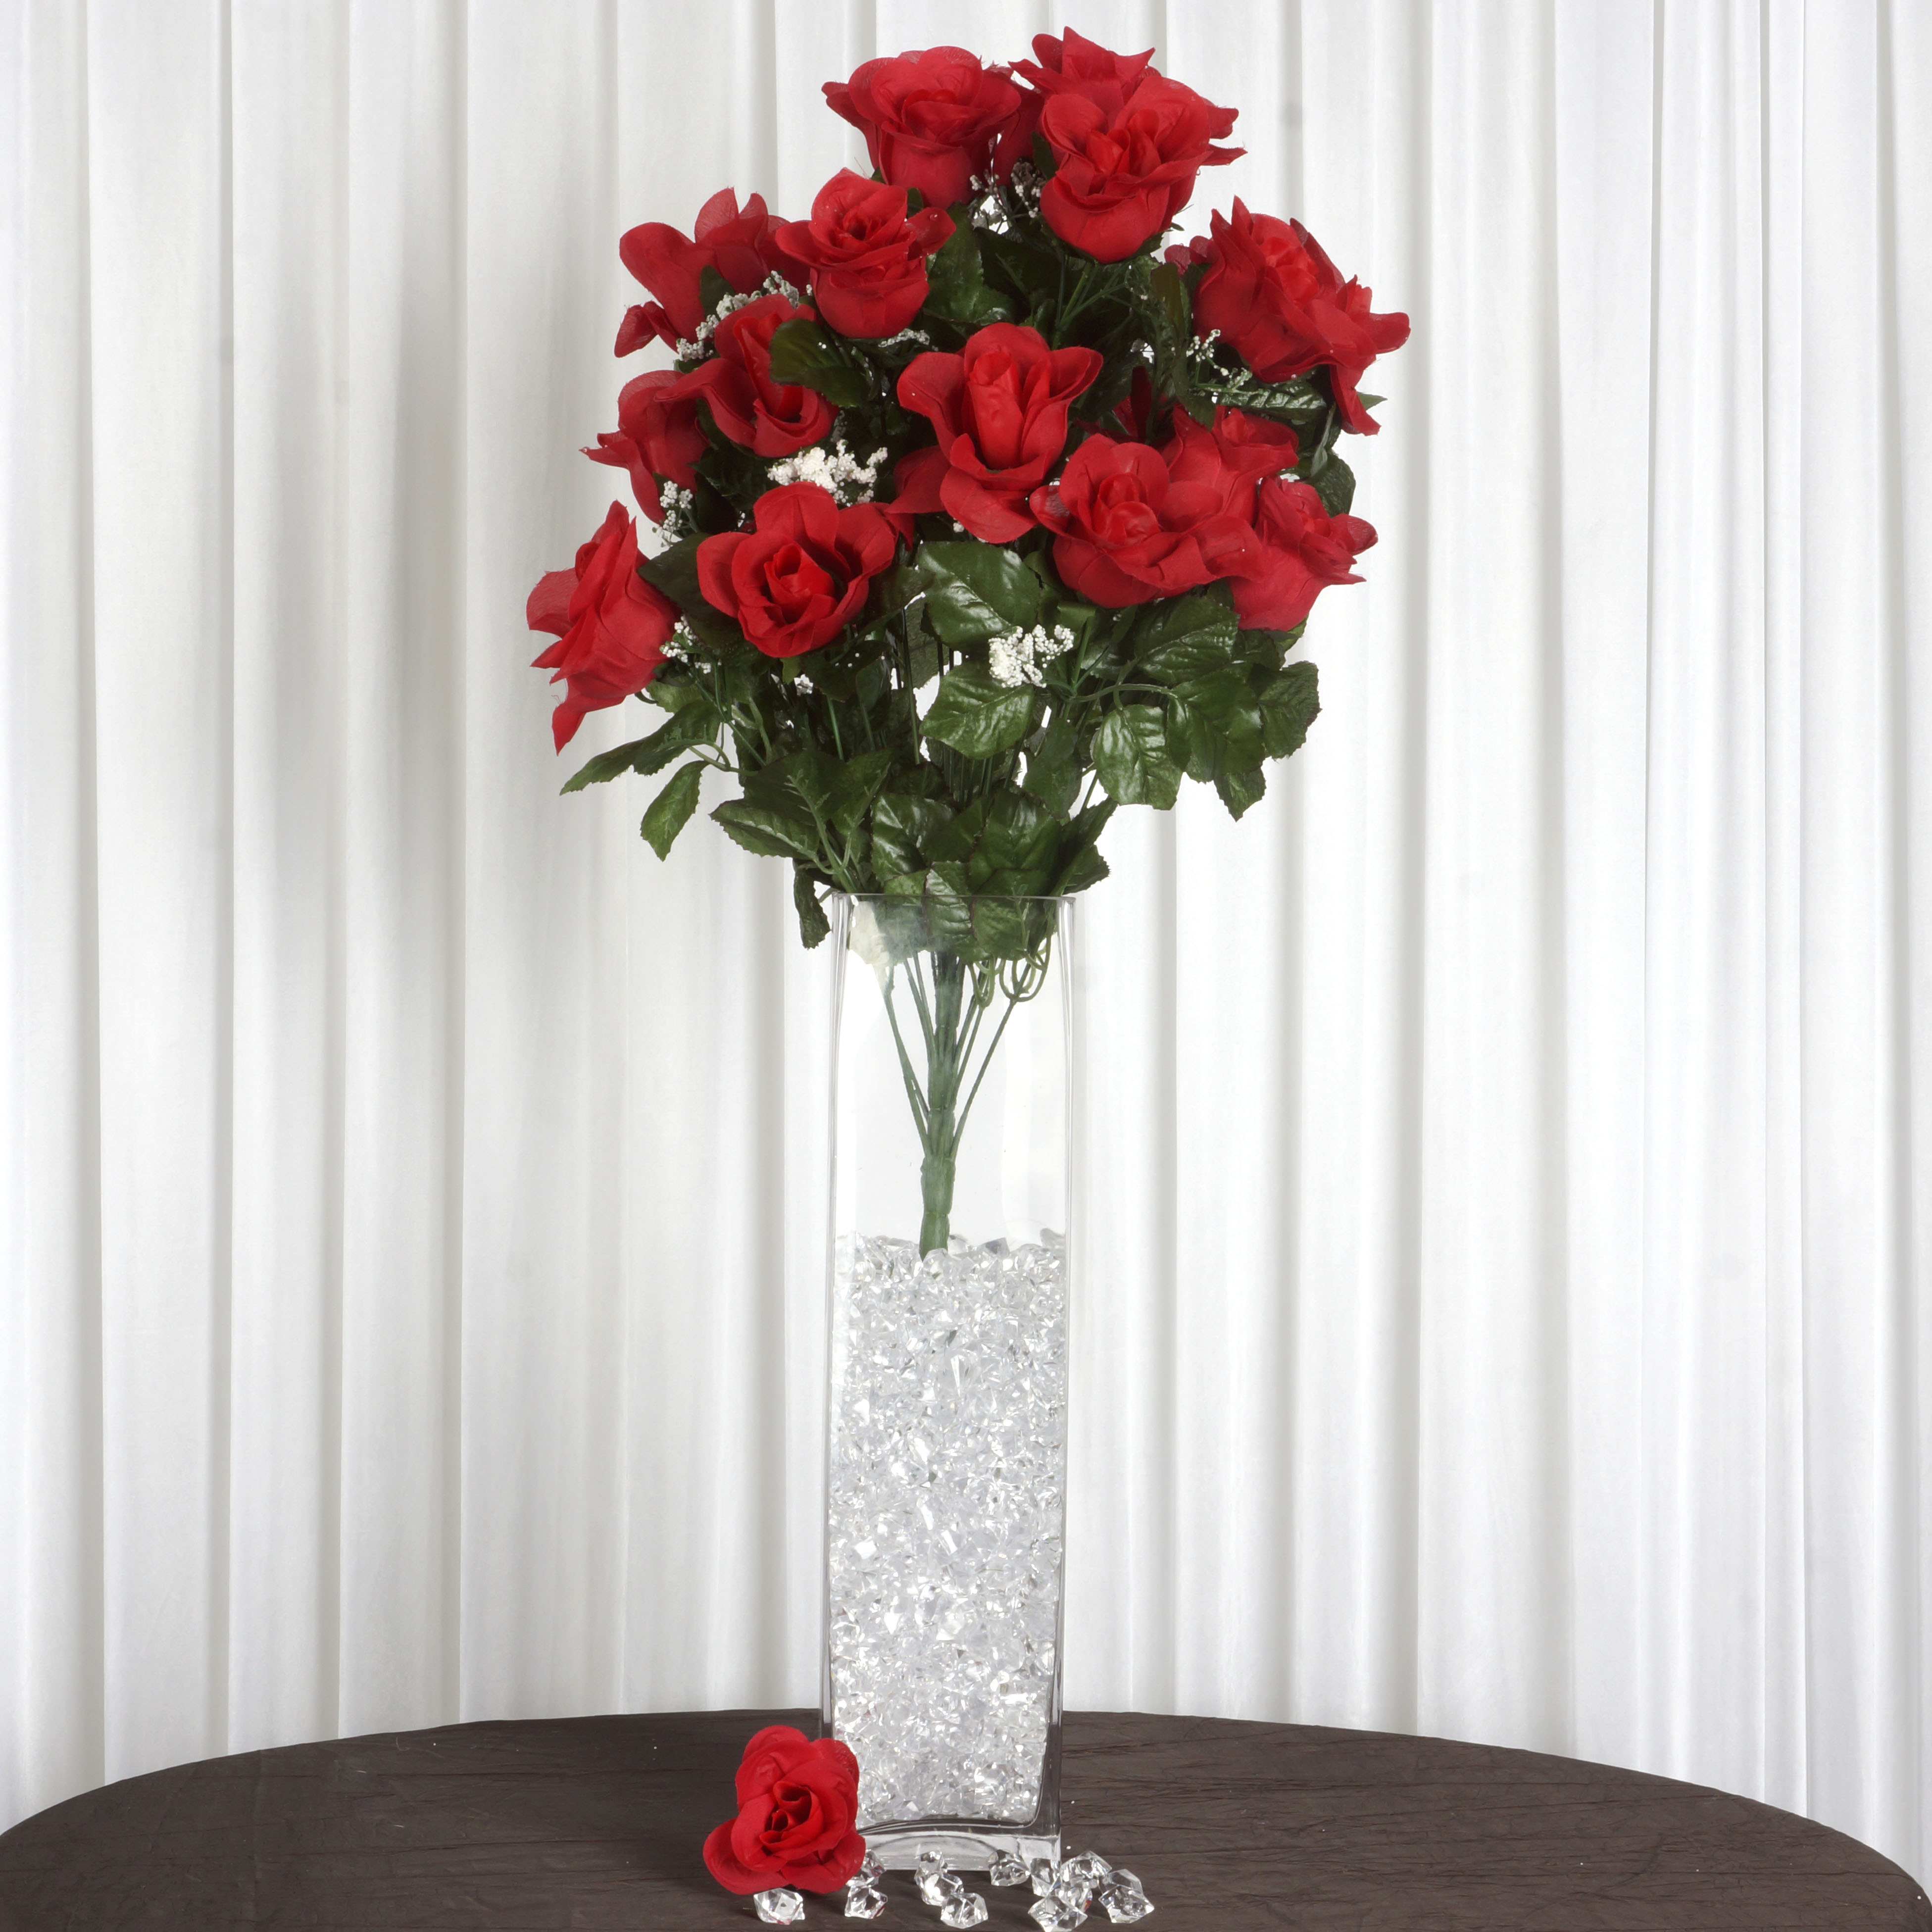 192 GIANT ROSE BUDS BUSH Wedding FLOWERS Wholesale Party Bouquets ...